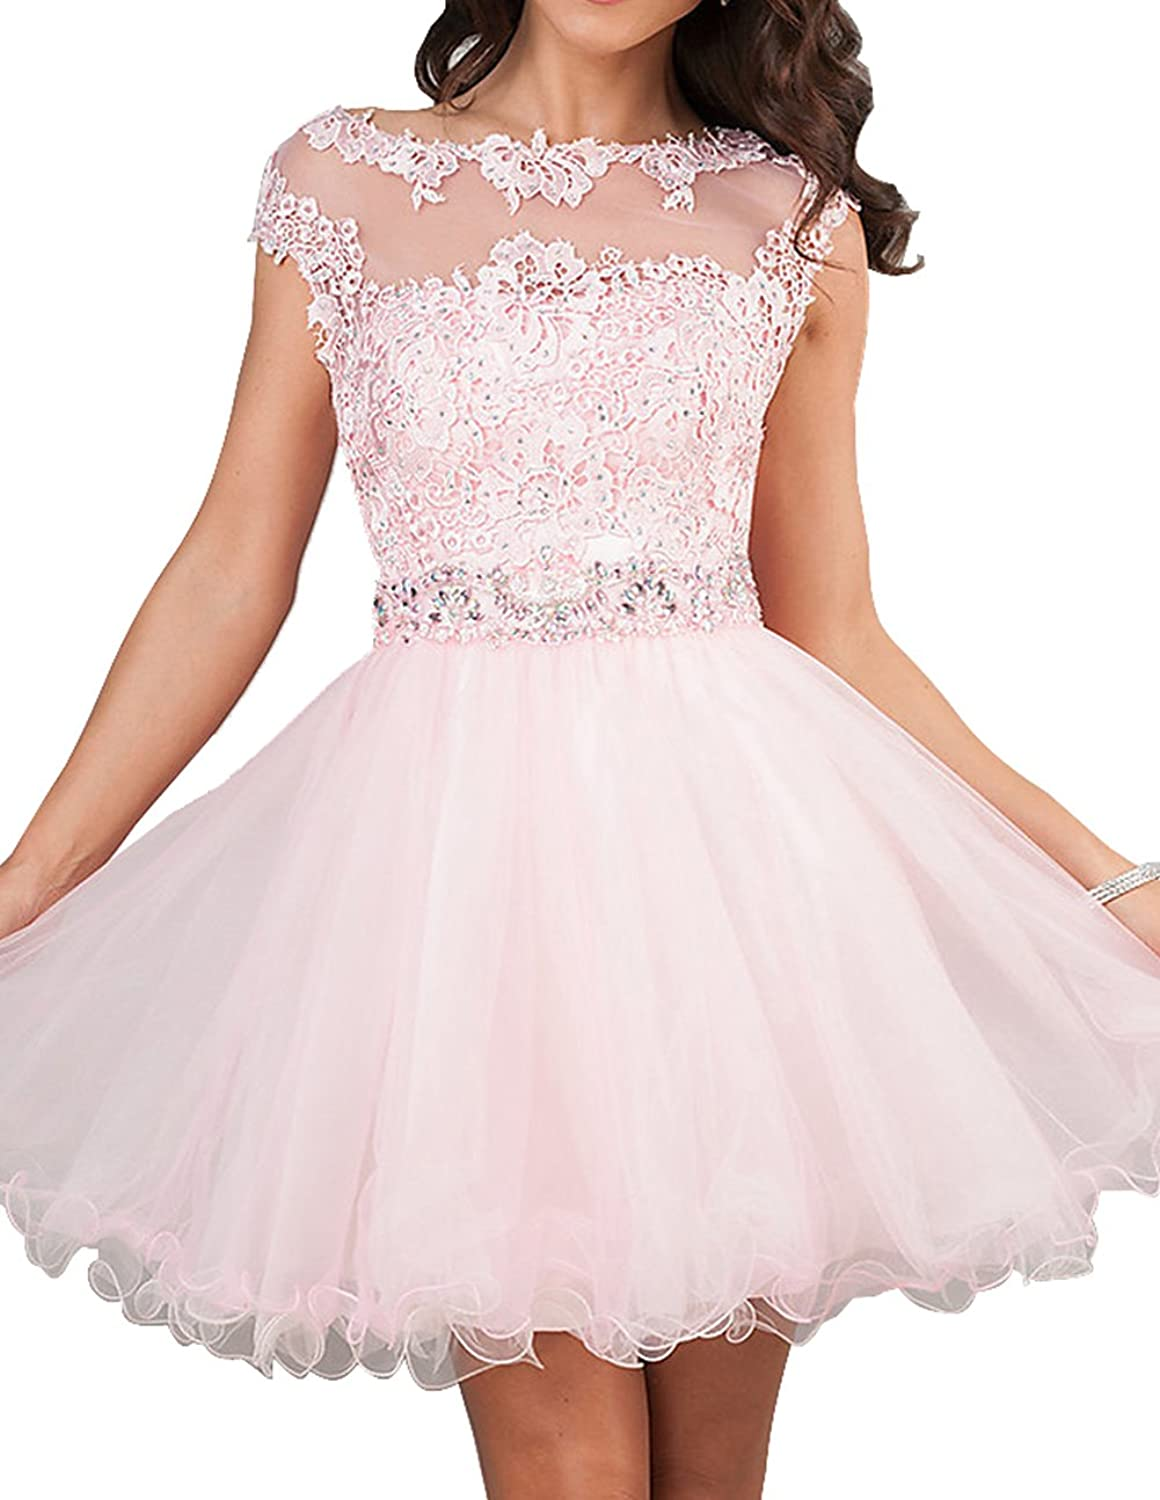 Yang Women Sheer Neck Lace Girls Homecoming Dress School Party Gowns